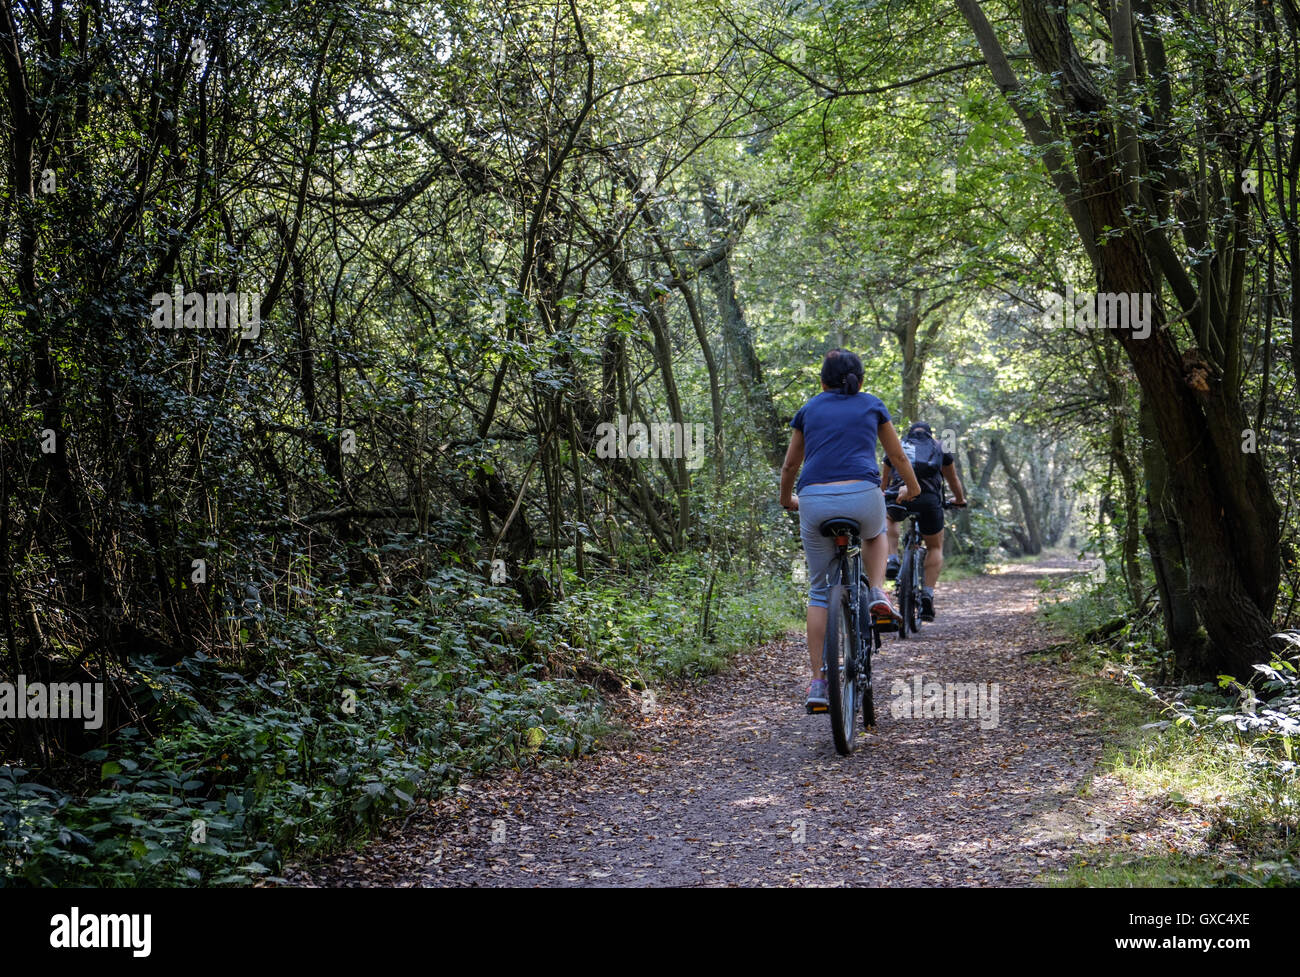 Mountain Bike trails at Pooley Country Park - Stock Image